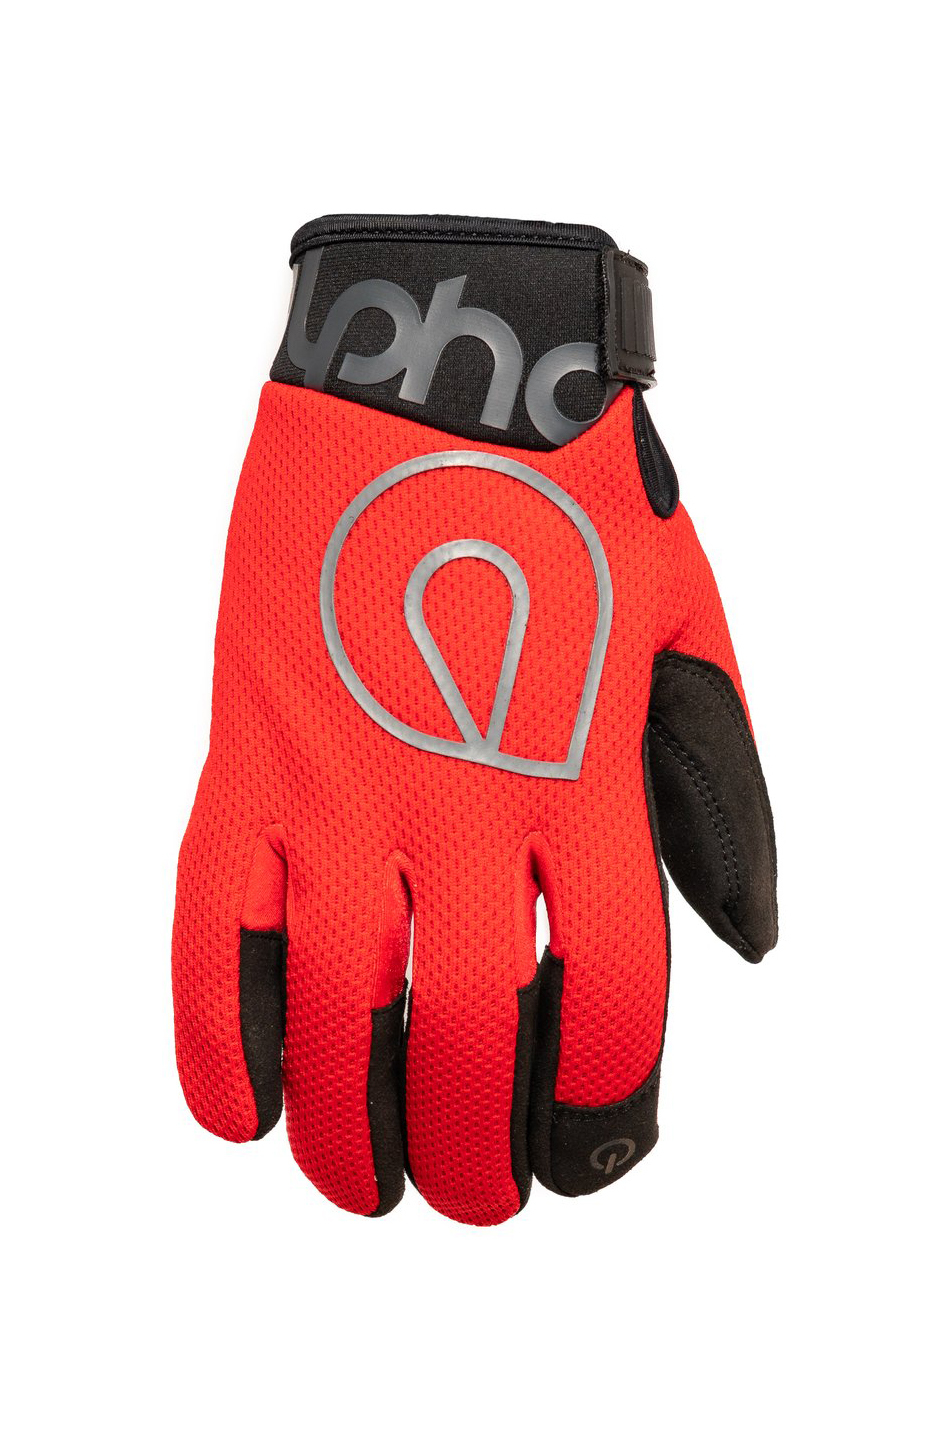 Alpha Gloves AG02-02-XXL Gloves, Shop, The Standard, Hook and Loop Closure, Neoprene Cuff, Mesh Top, Touch Screen Capable, Synthetic Leather Palm, Red, 2X-Large, Pair